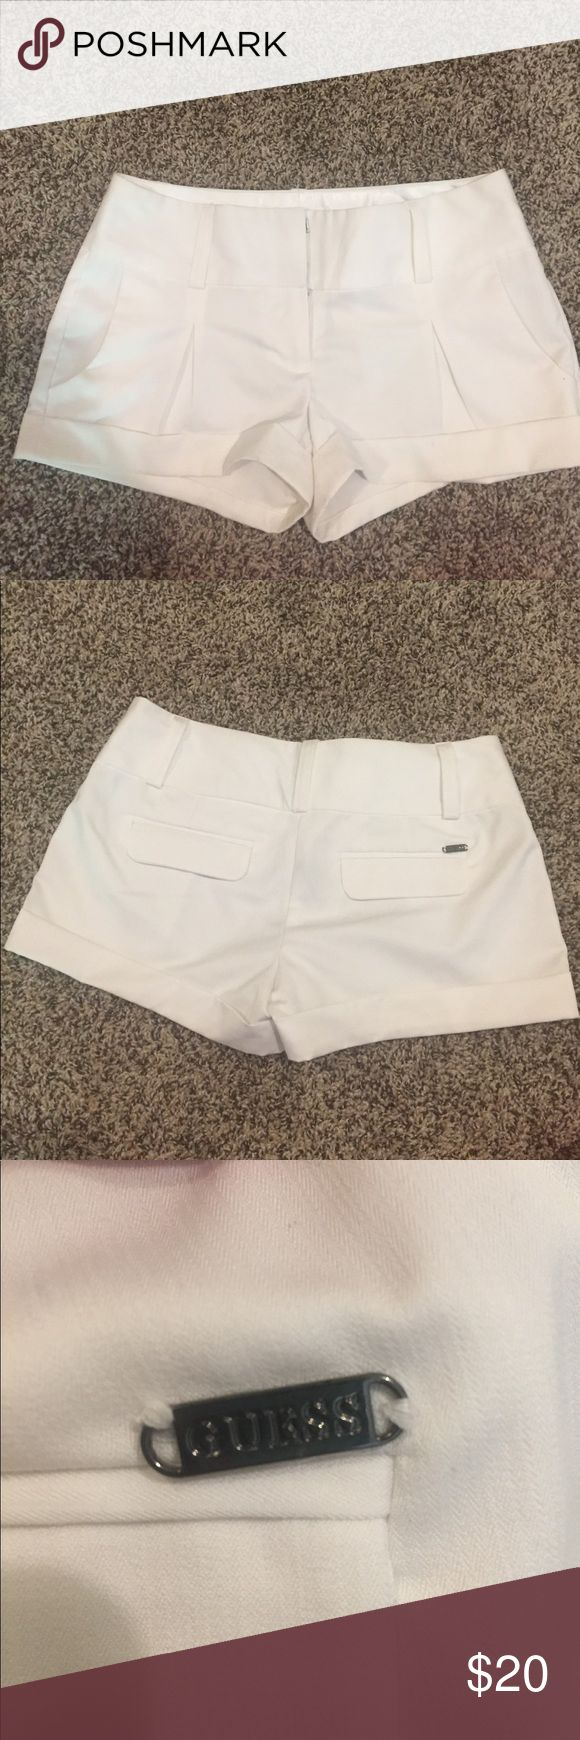 White Guess shorts White Guess shorts. Bought new at an off-price retail store store (kind of like a TJ Maxx or Marshalls). Never worn! Guess Shorts